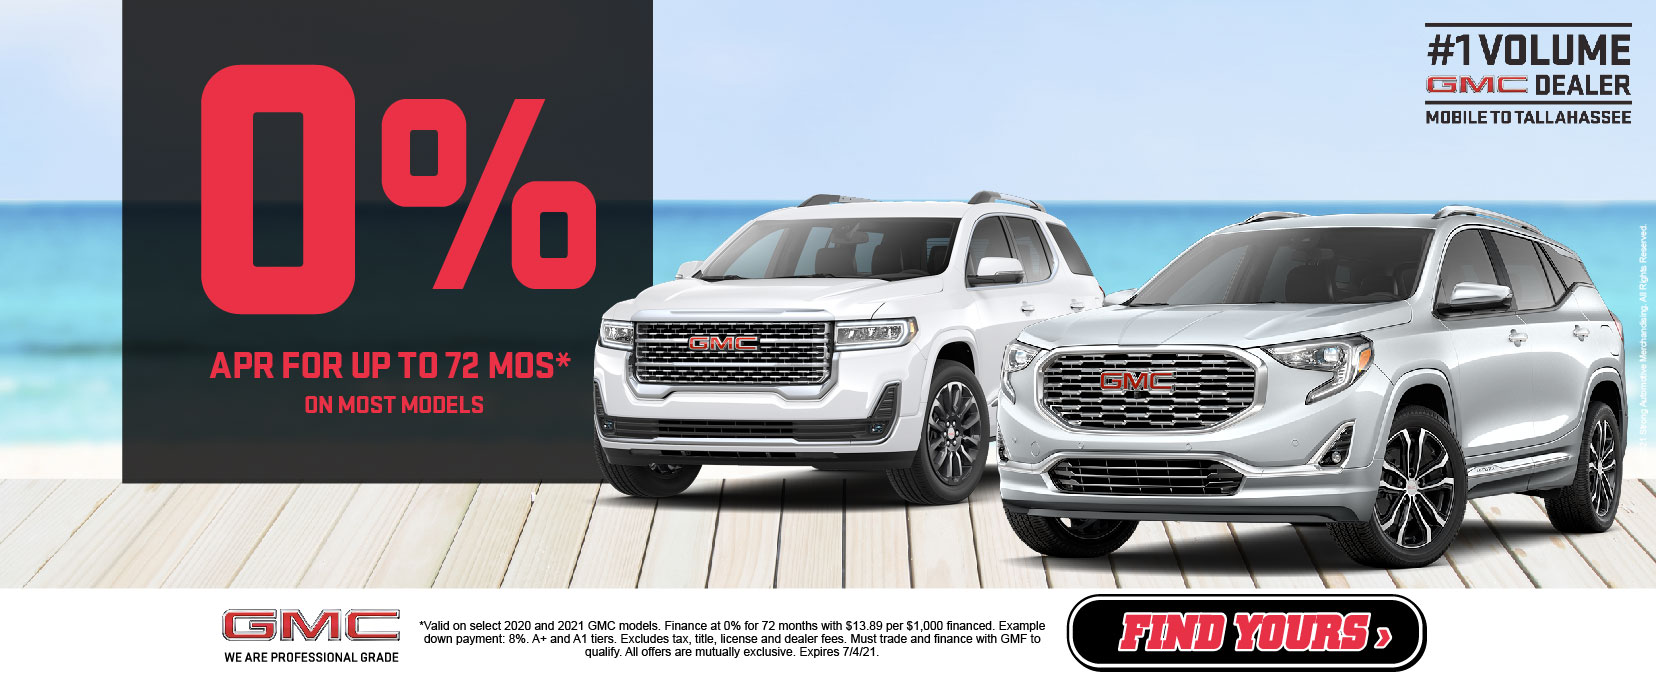 GMC 0% APR for up to 72 months